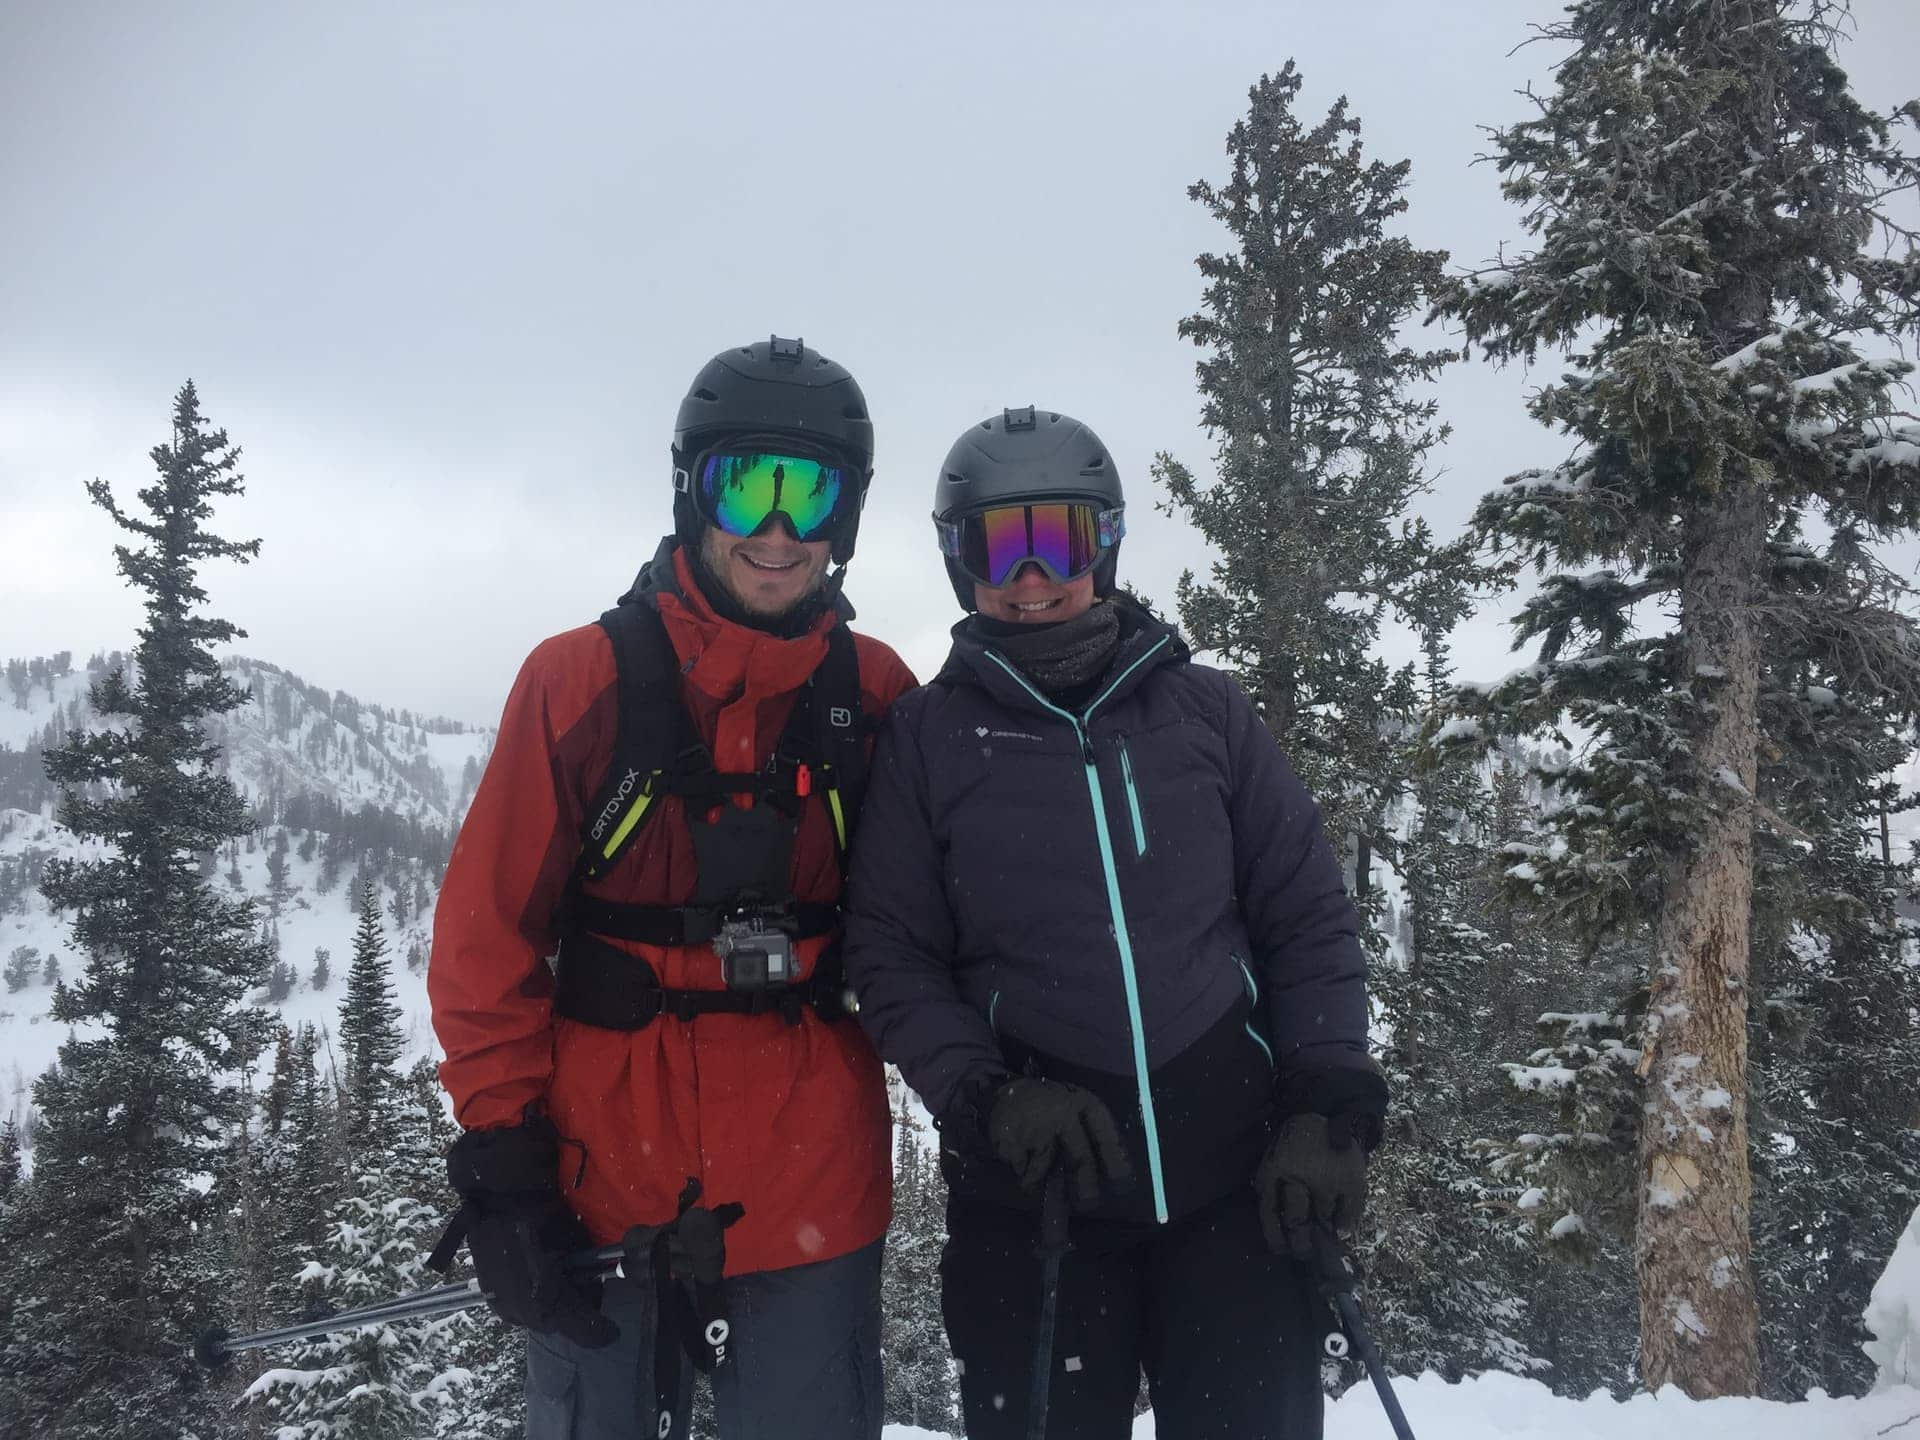 Christmas Day 2018 at Brighton Ski Resort in Utah